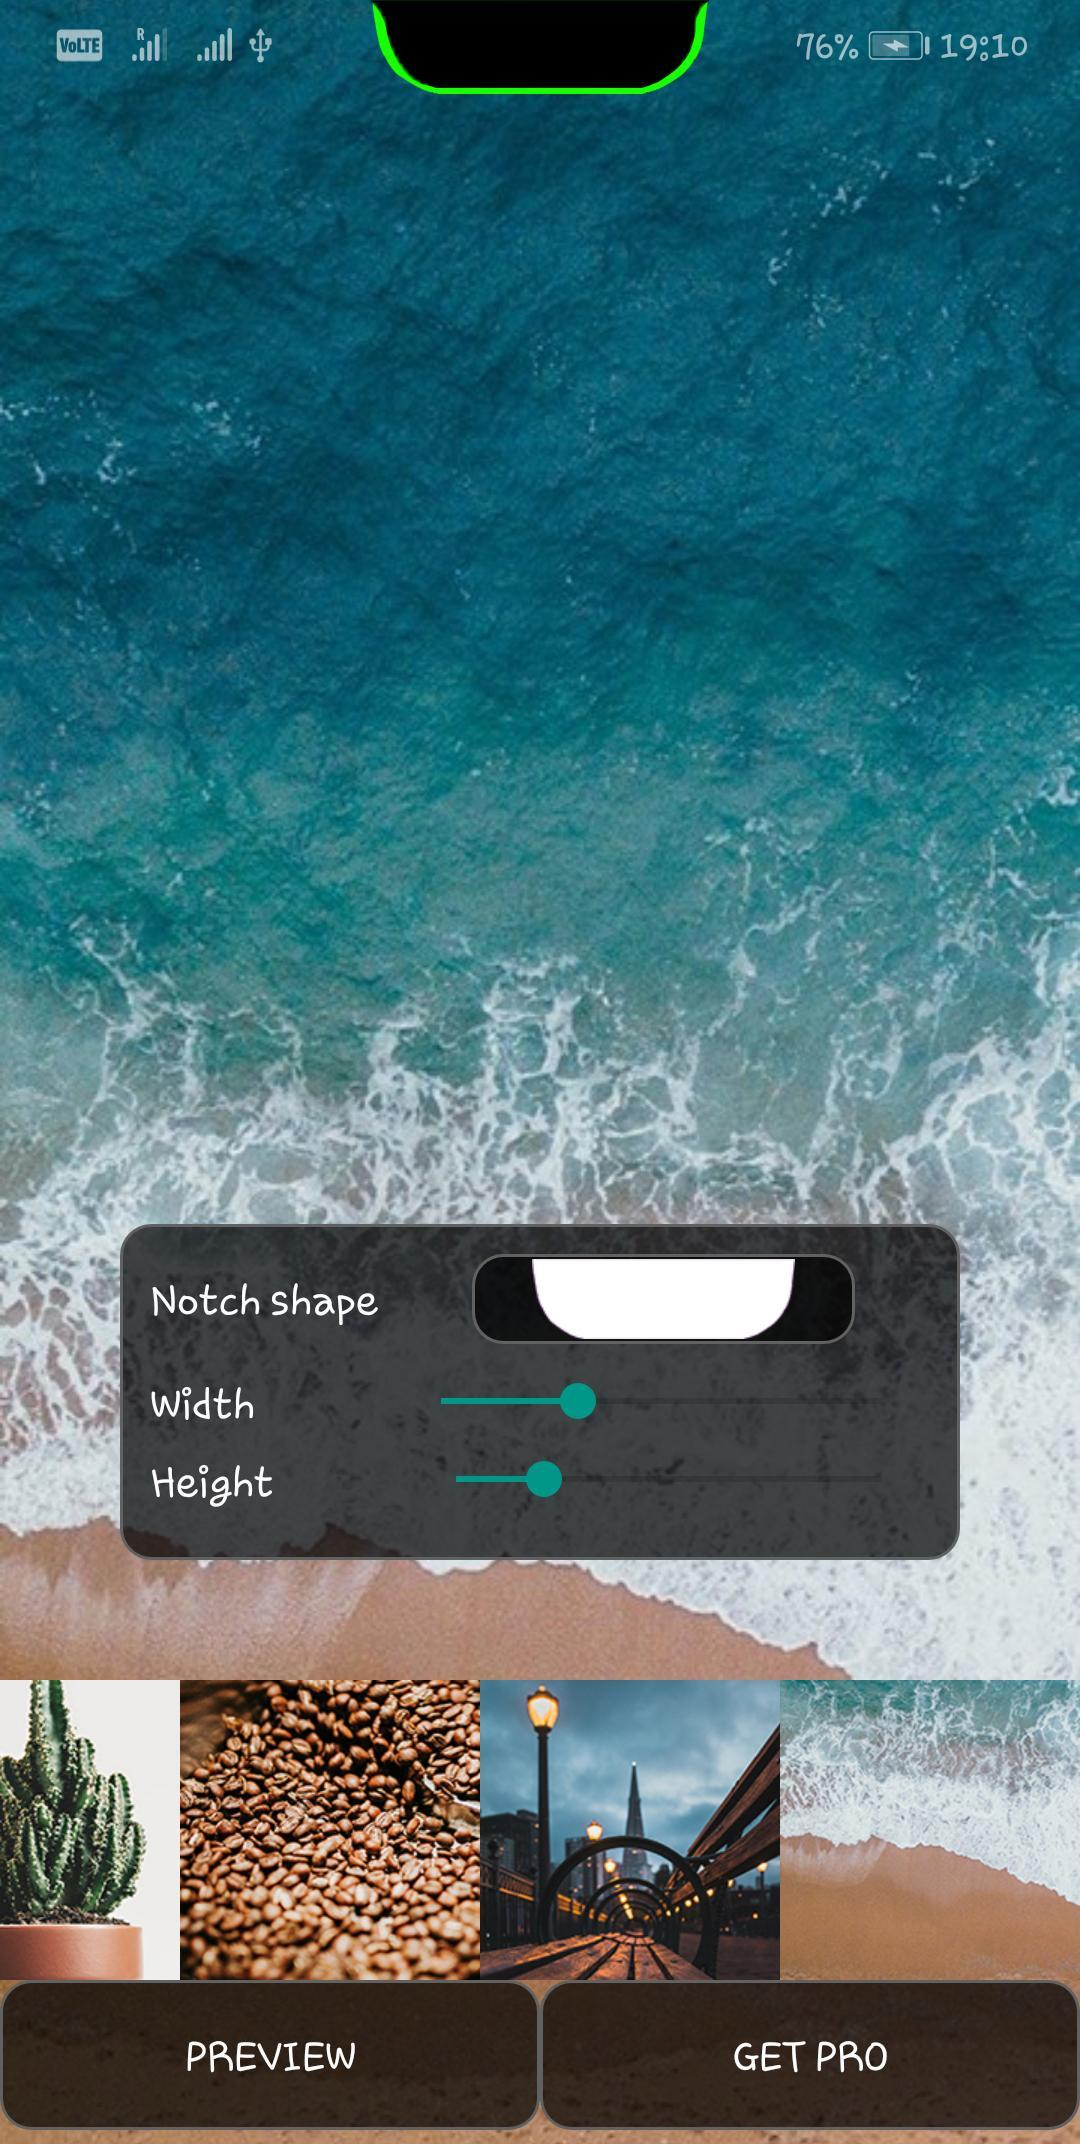 Notch & S10 Battery bar trial - Live wallpaper for Android